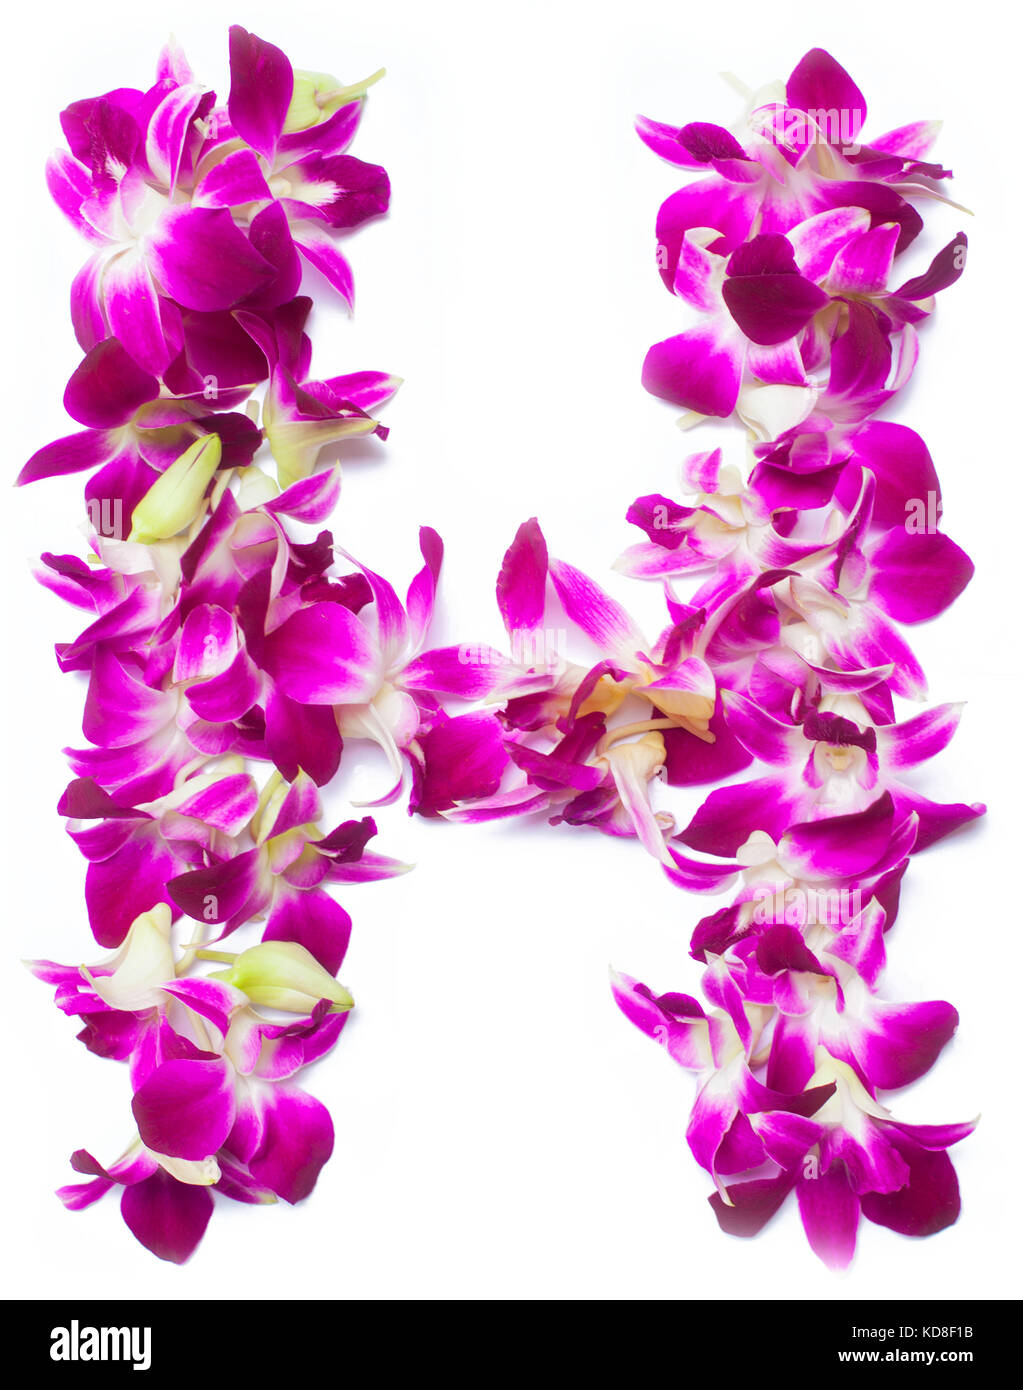 H Letter Images.Letter H From Orchid Flowers Isolated On White Stock Photo